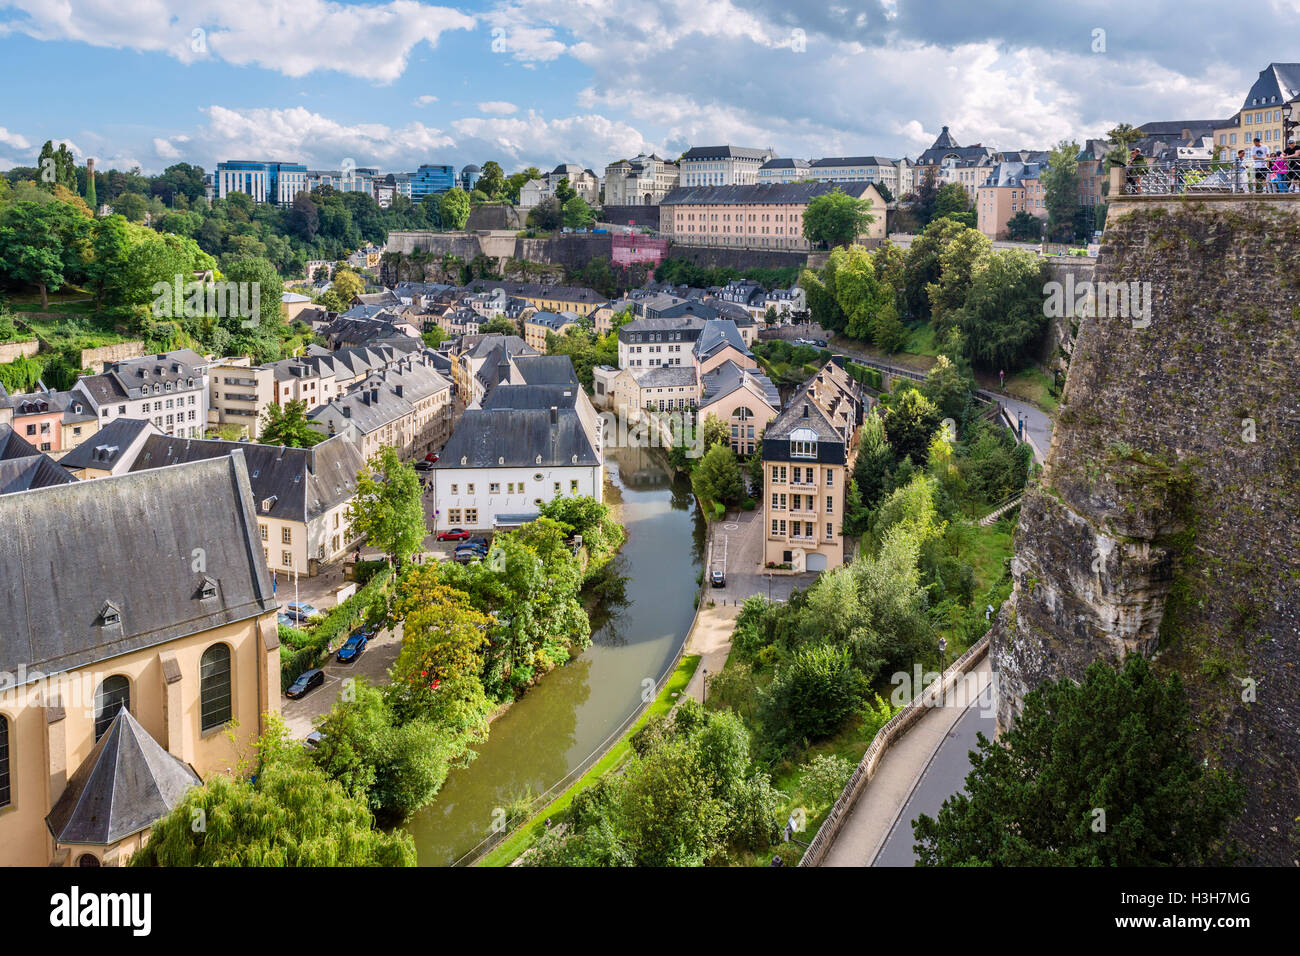 View from the Rue de la Corniche in the old town (La Vieille Ville), Luxembourg city, Luxembourg - Stock Image